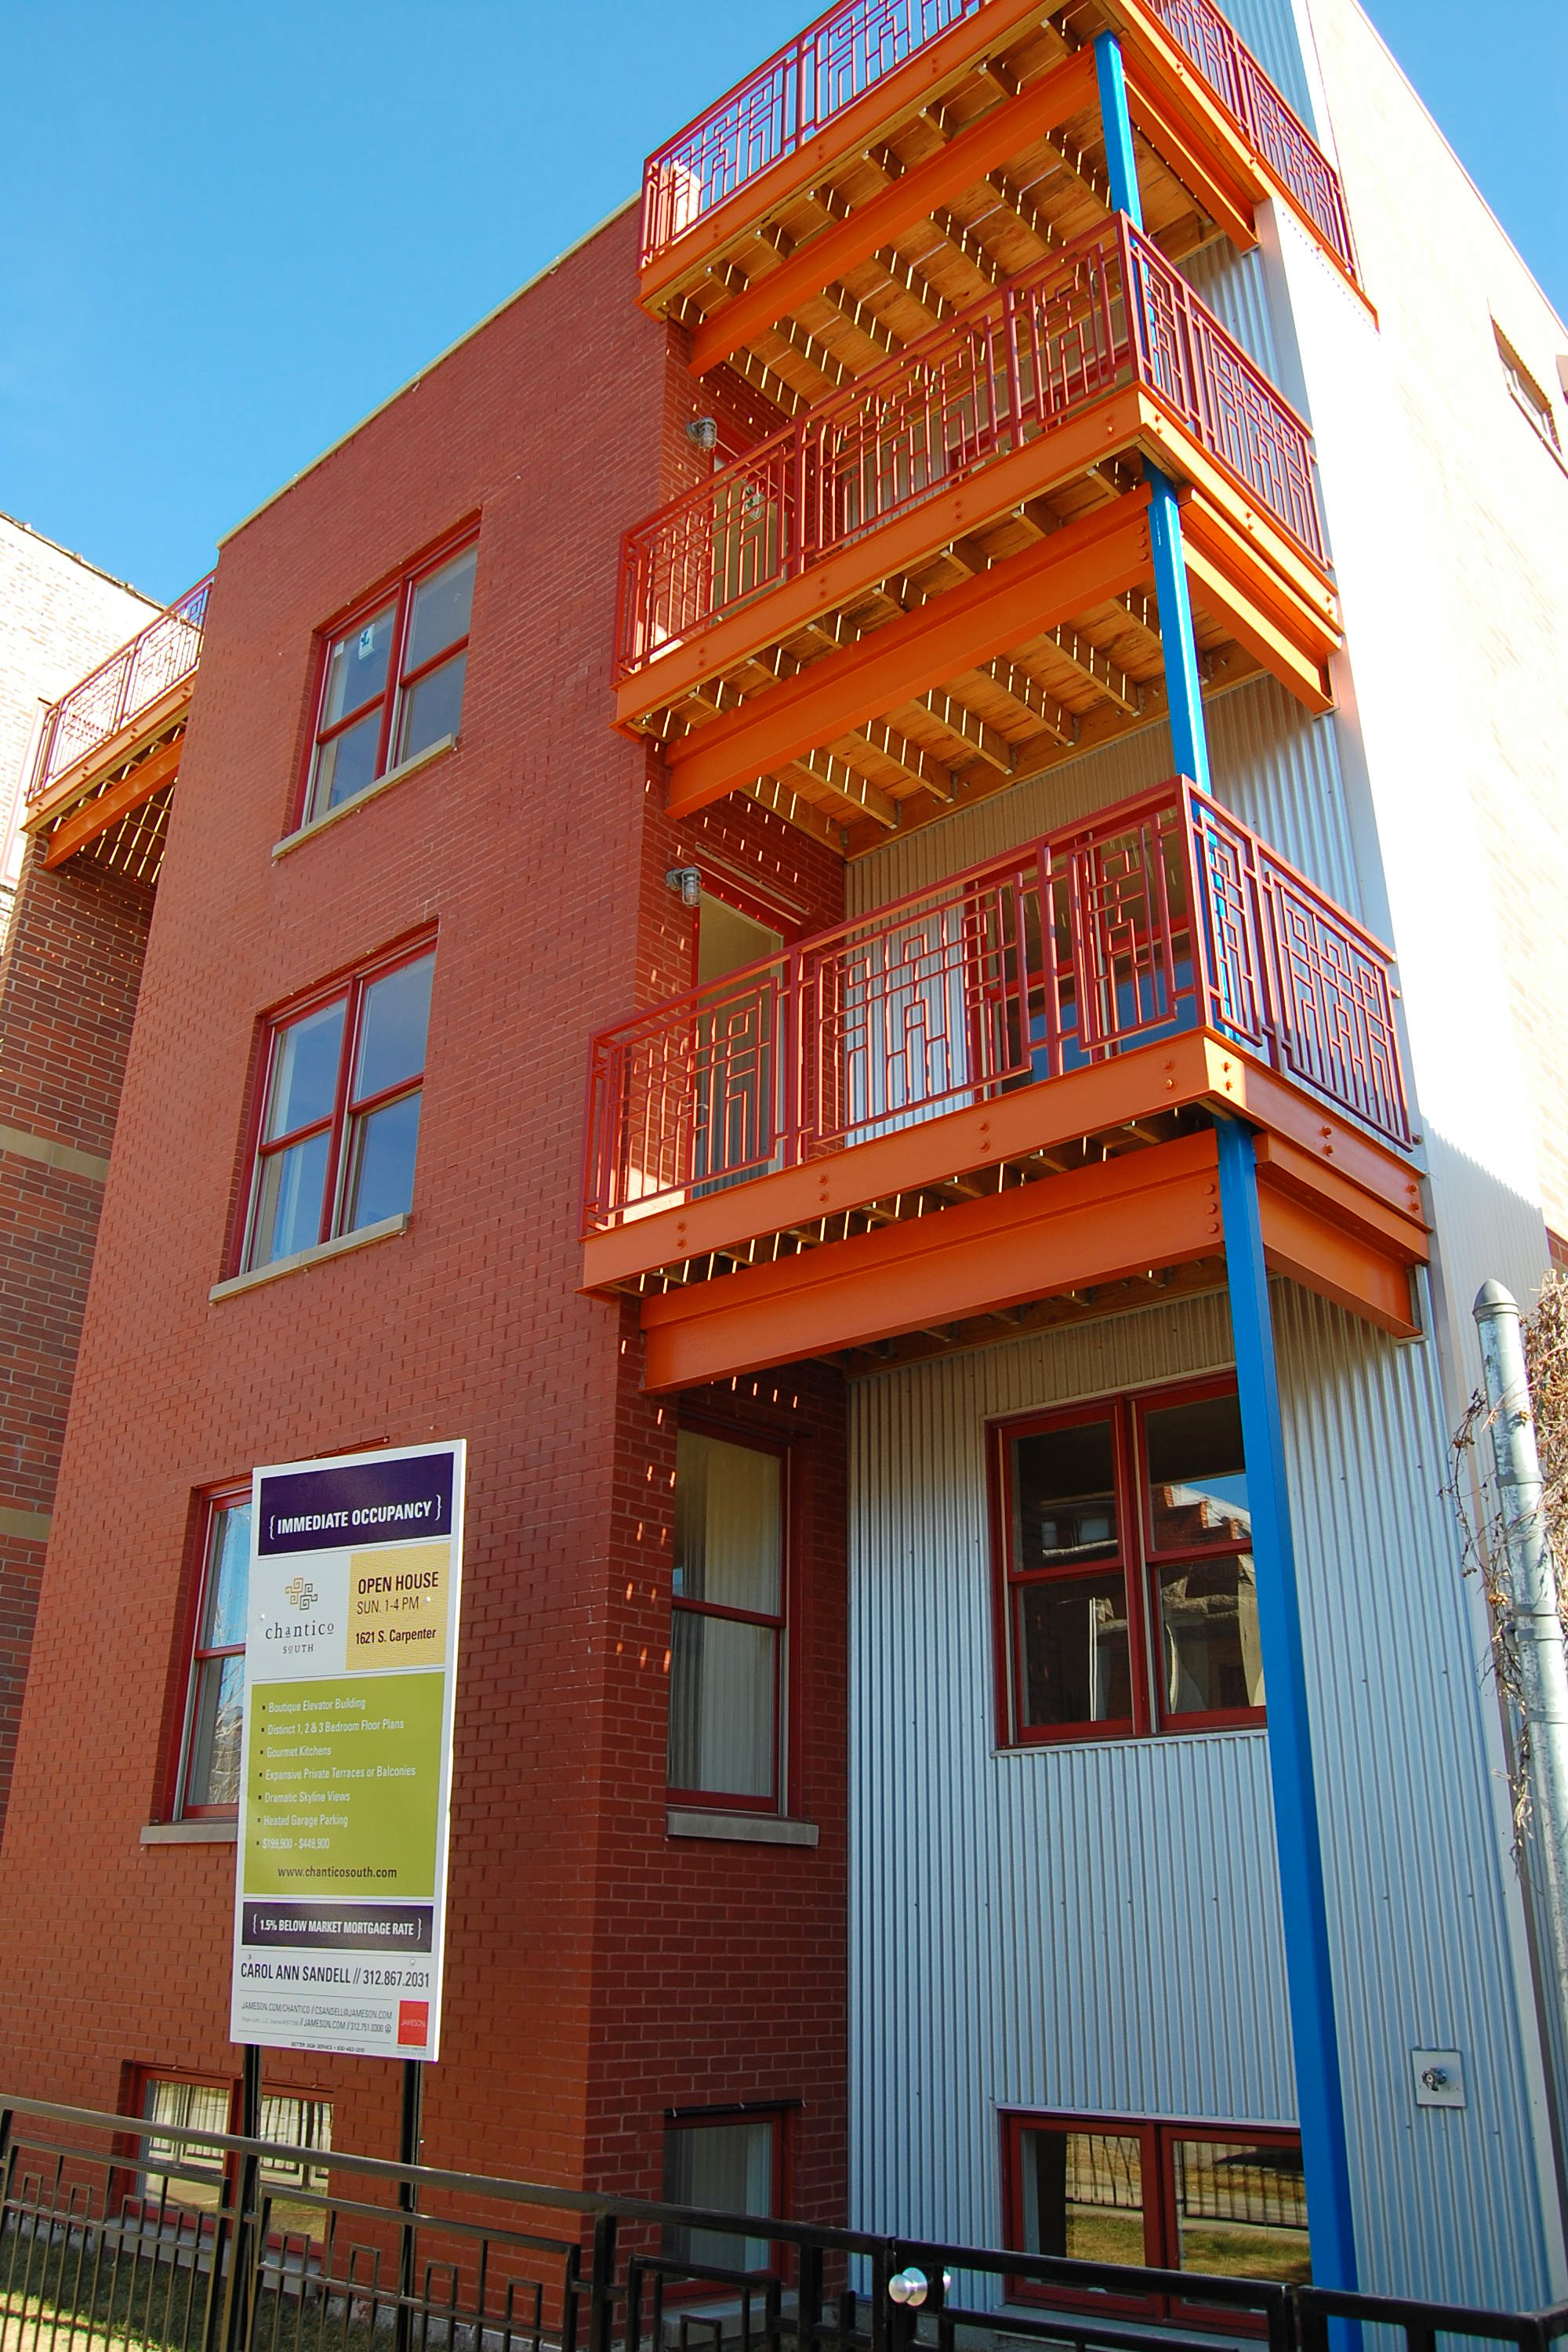 Multi-families are the market in Pilsen